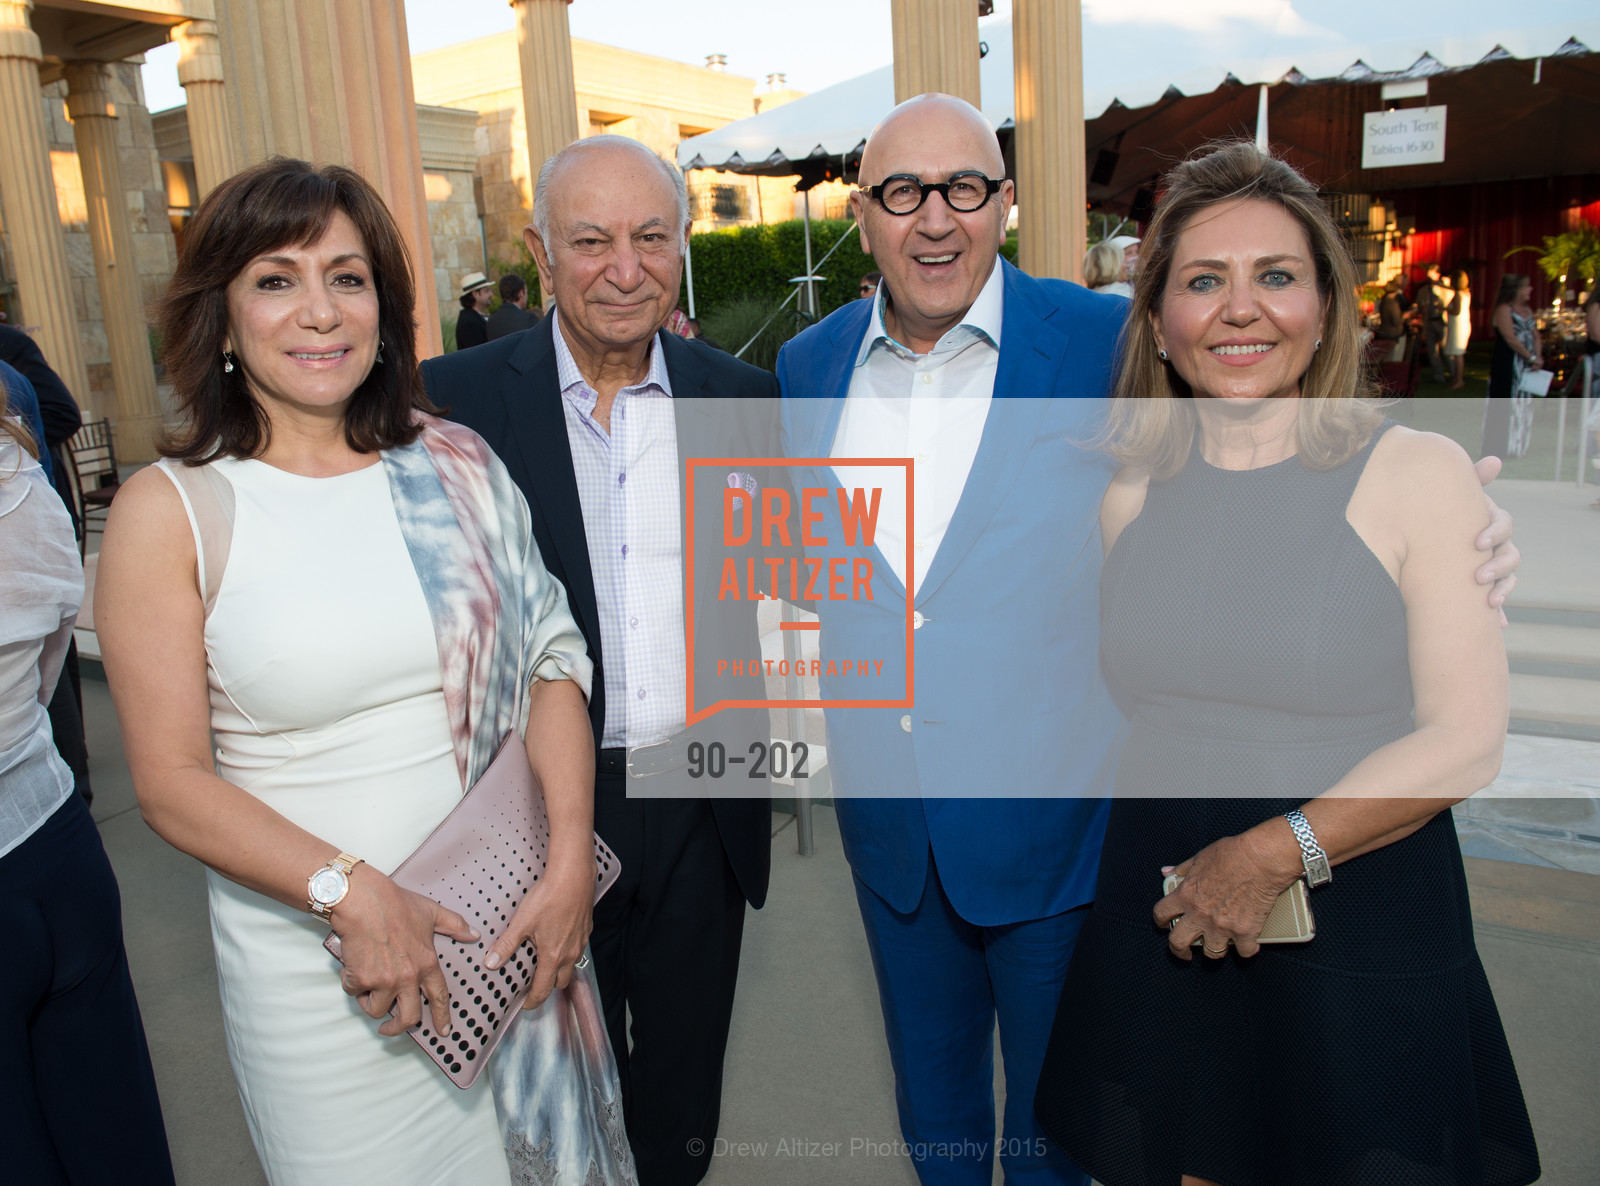 Katy Saei, Darioush Khaledi, Michael Saei, Shahpar Khaledi, Festival del Sole Patron Dinner at Darioush Winery, Darioush Winery. 4240 Silverado Trail, July 24th, 2015,Drew Altizer, Drew Altizer Photography, full-service agency, private events, San Francisco photographer, photographer california